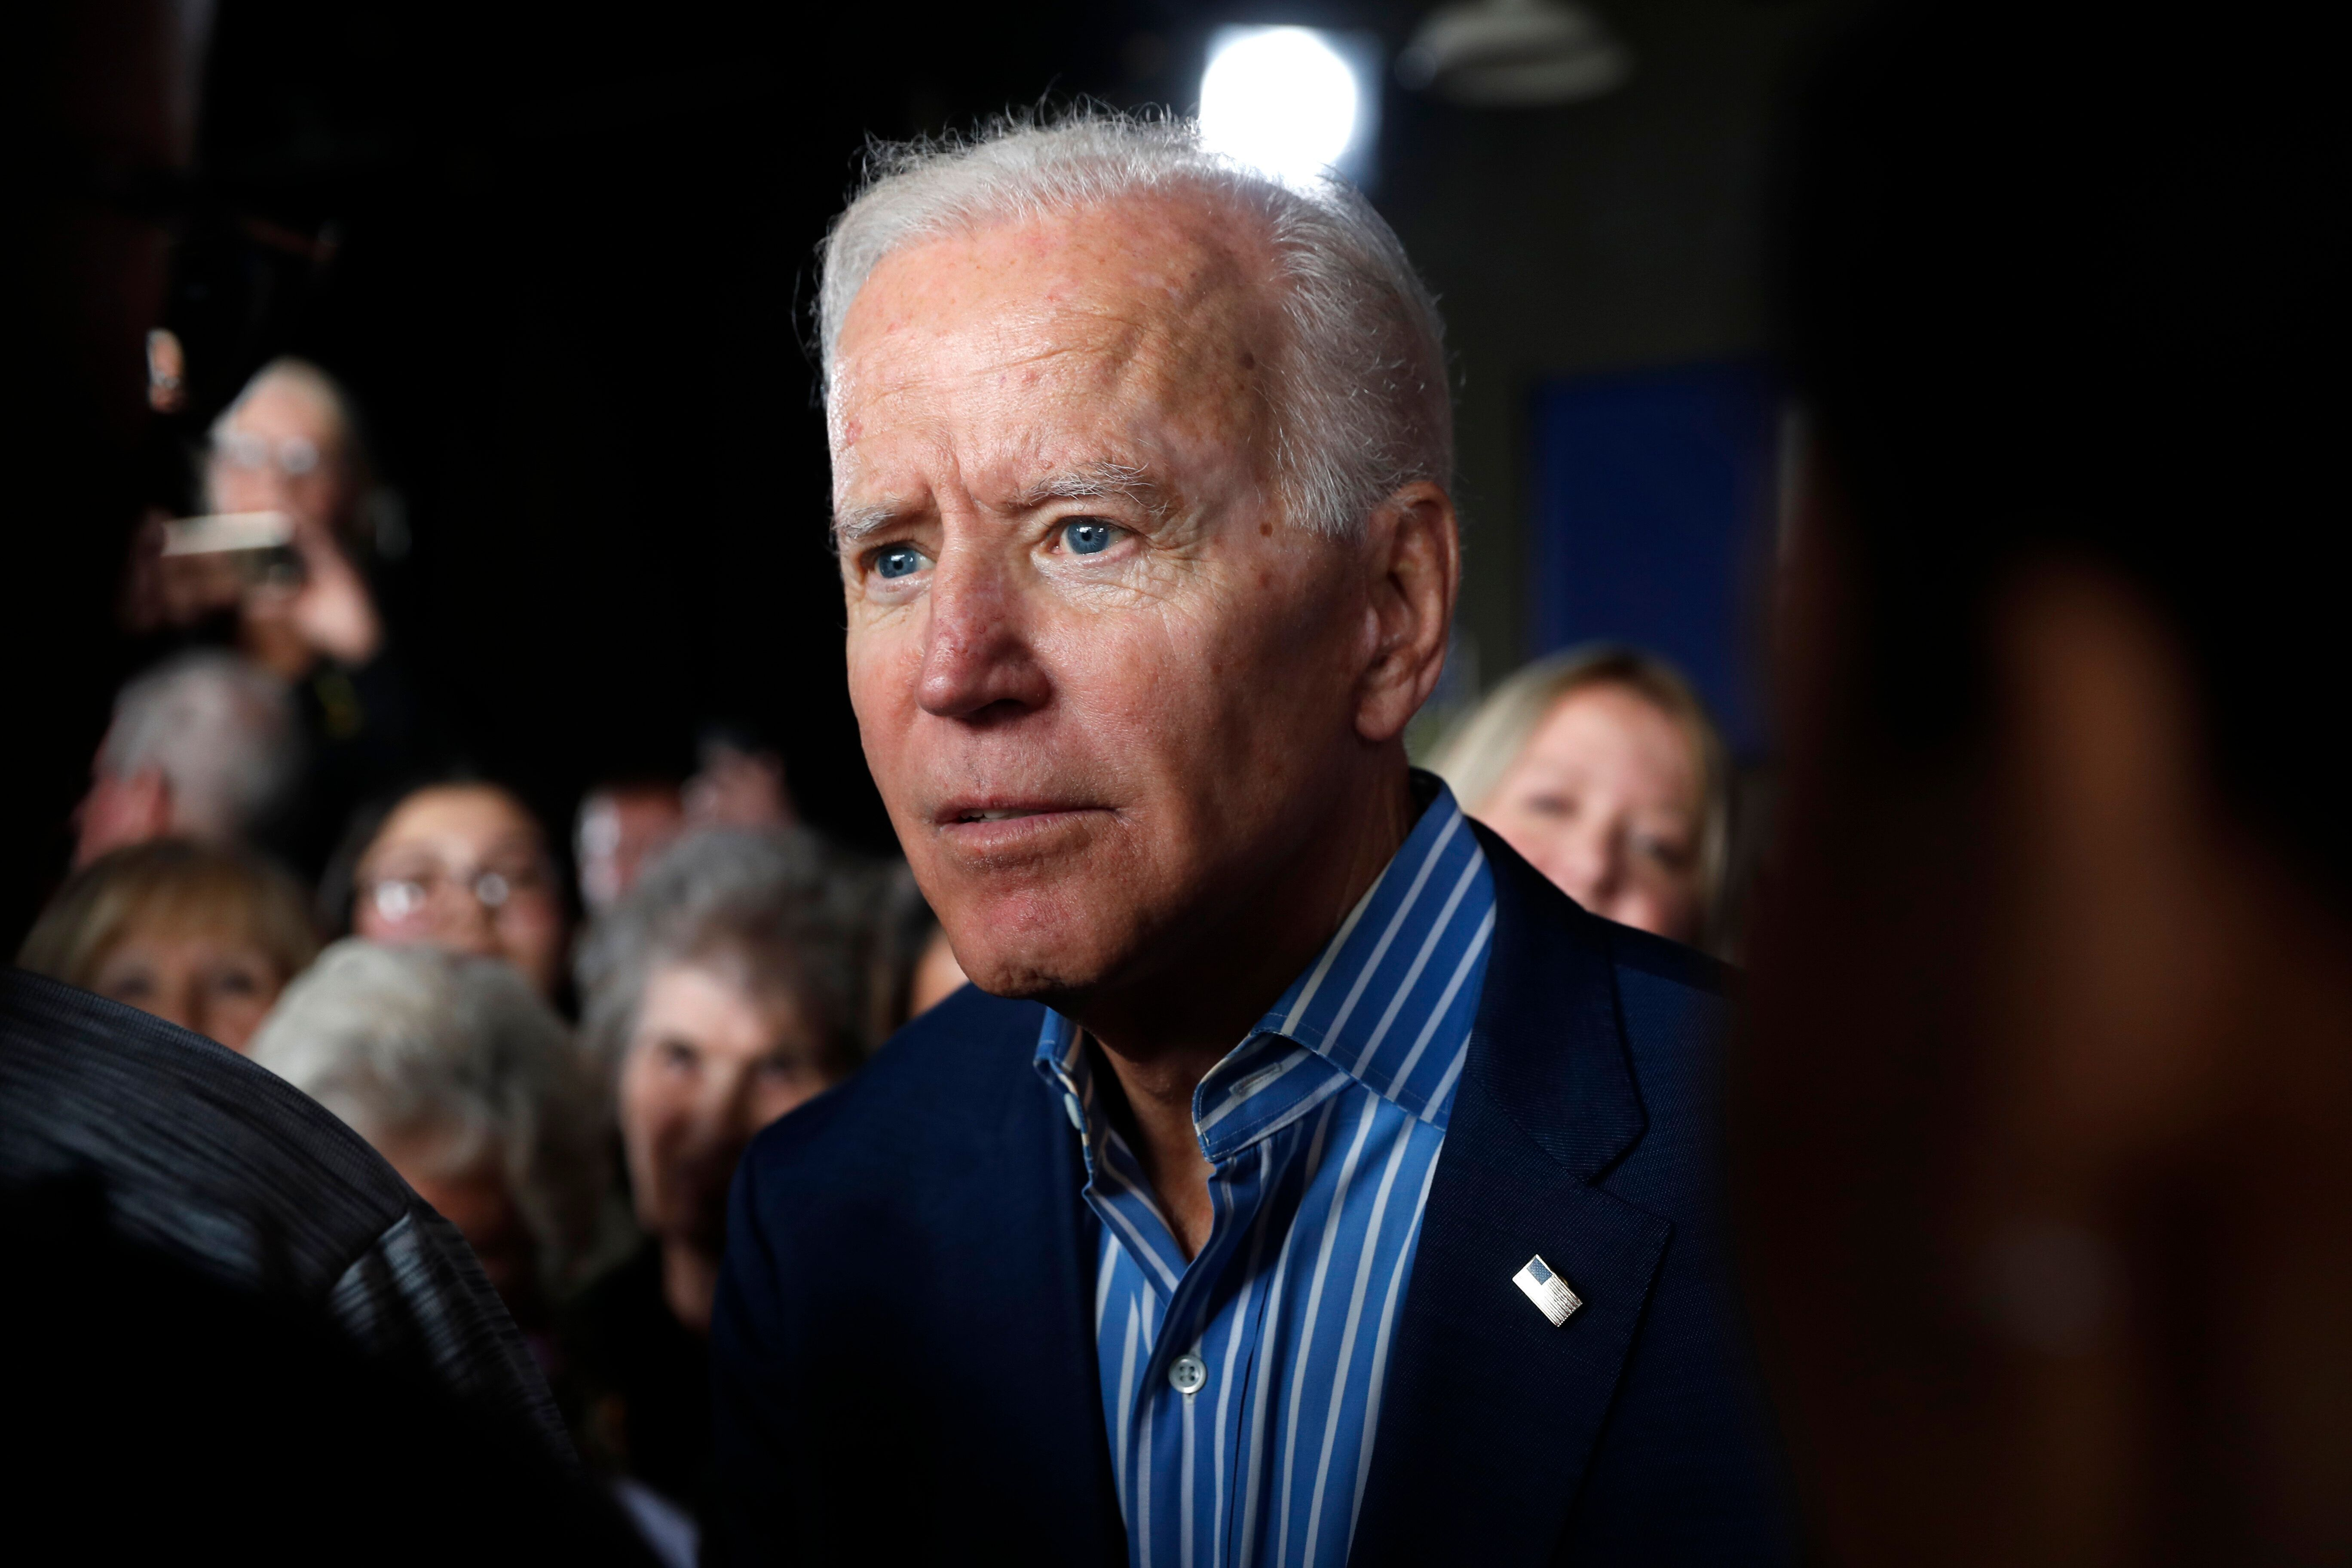 Former Vice President and Democratic presidential candidate Joe Biden greets audience members during a rally, Wednesday, May 1, 2019, in Iowa City, Iowa. (AP Photo/Charlie Neibergall)